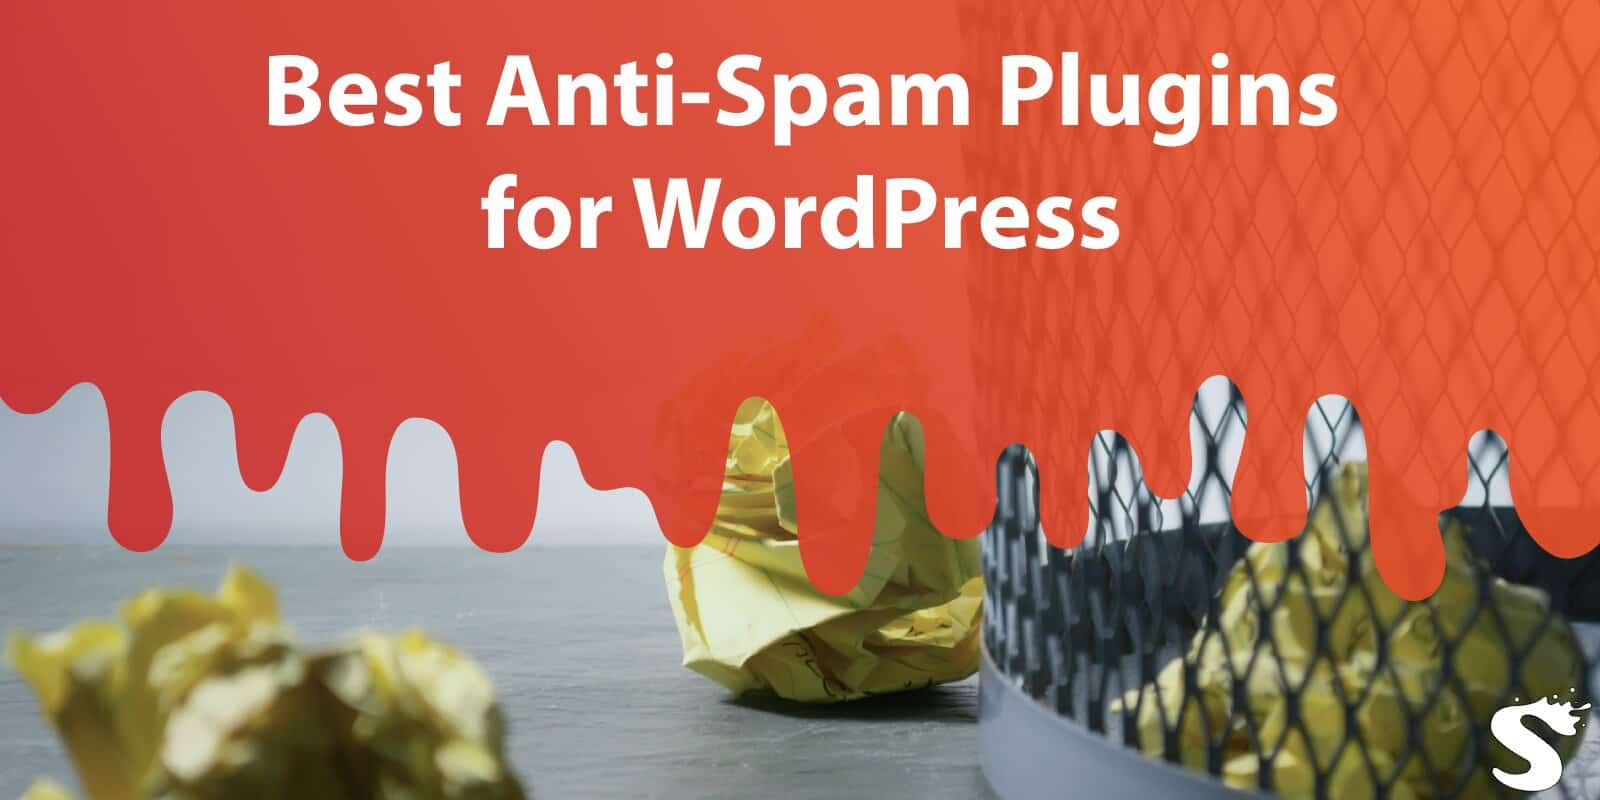 Best Anti-Spam Plugins for WordPress